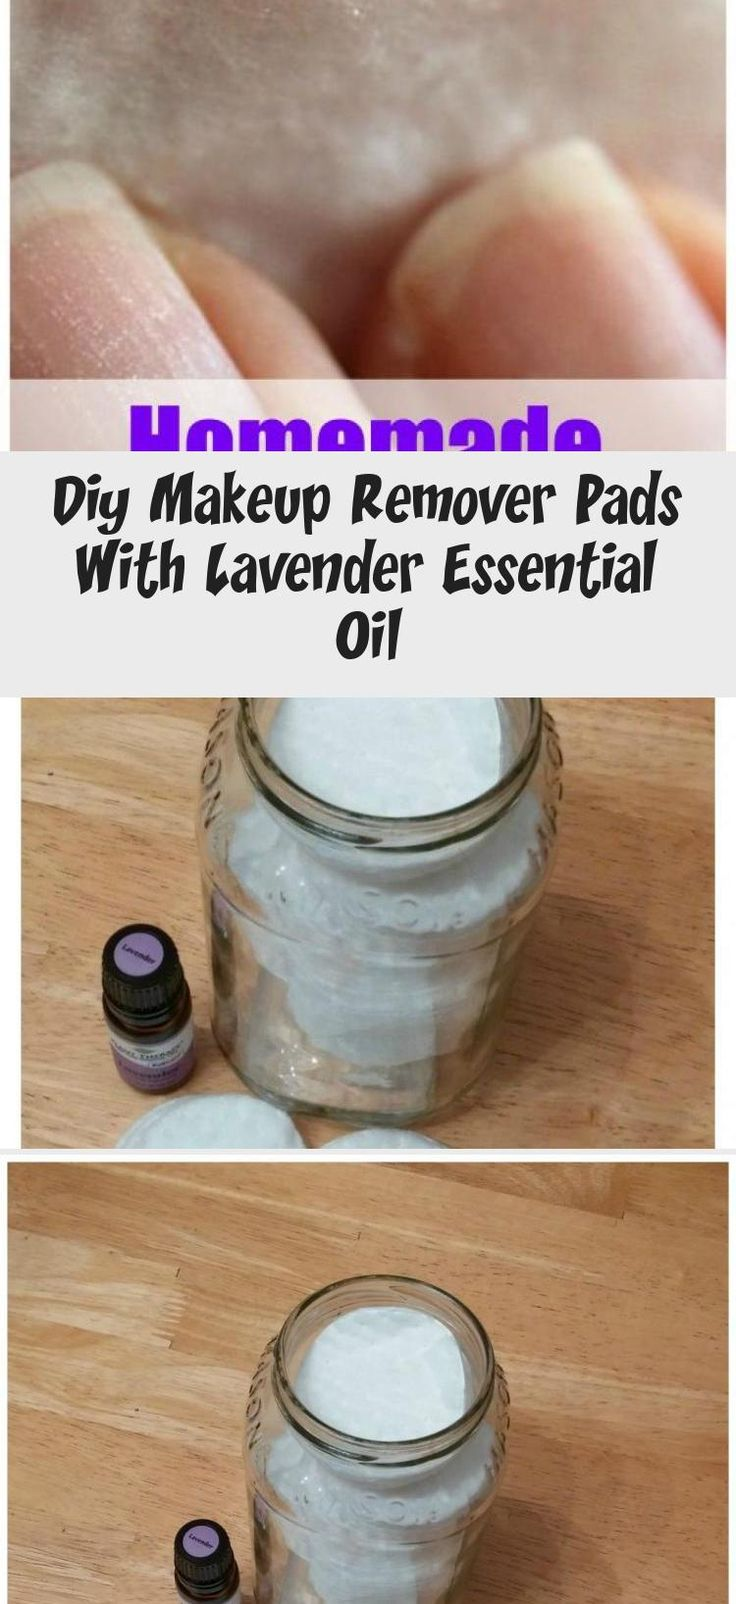 Easy non toxic recipe for makeup remover pads with